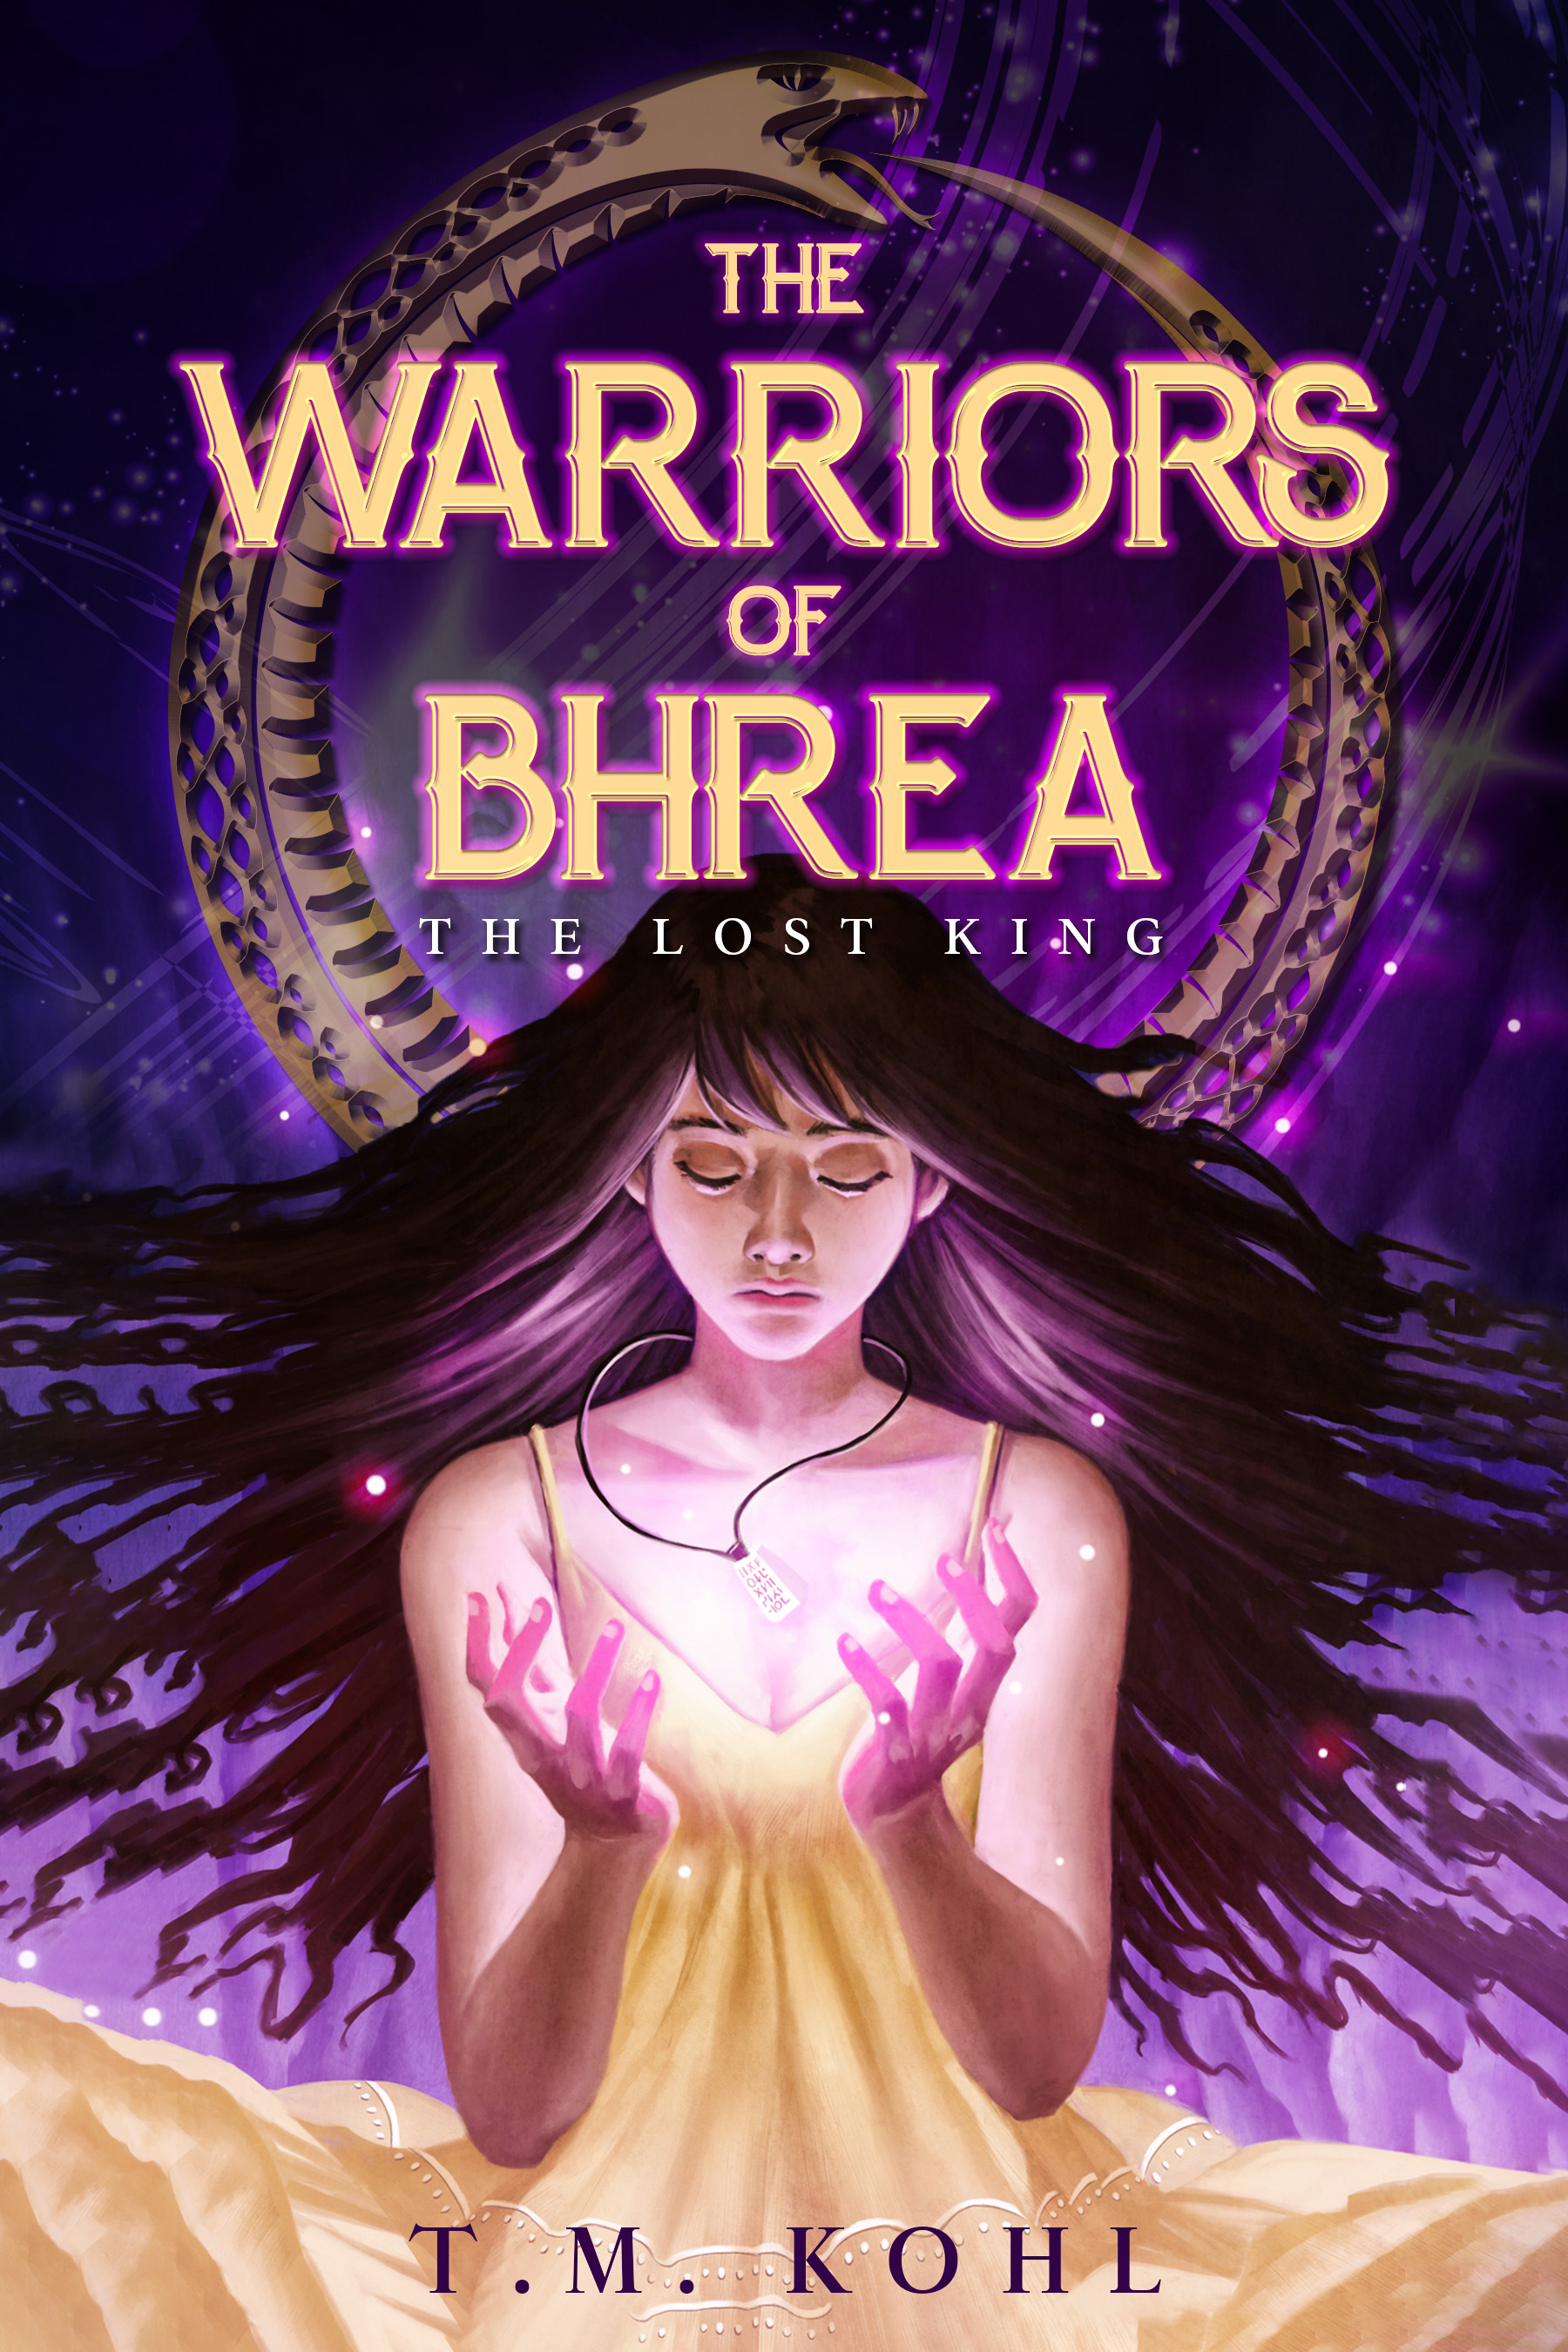 The Warriors of Bhrea by T. M. Kohl